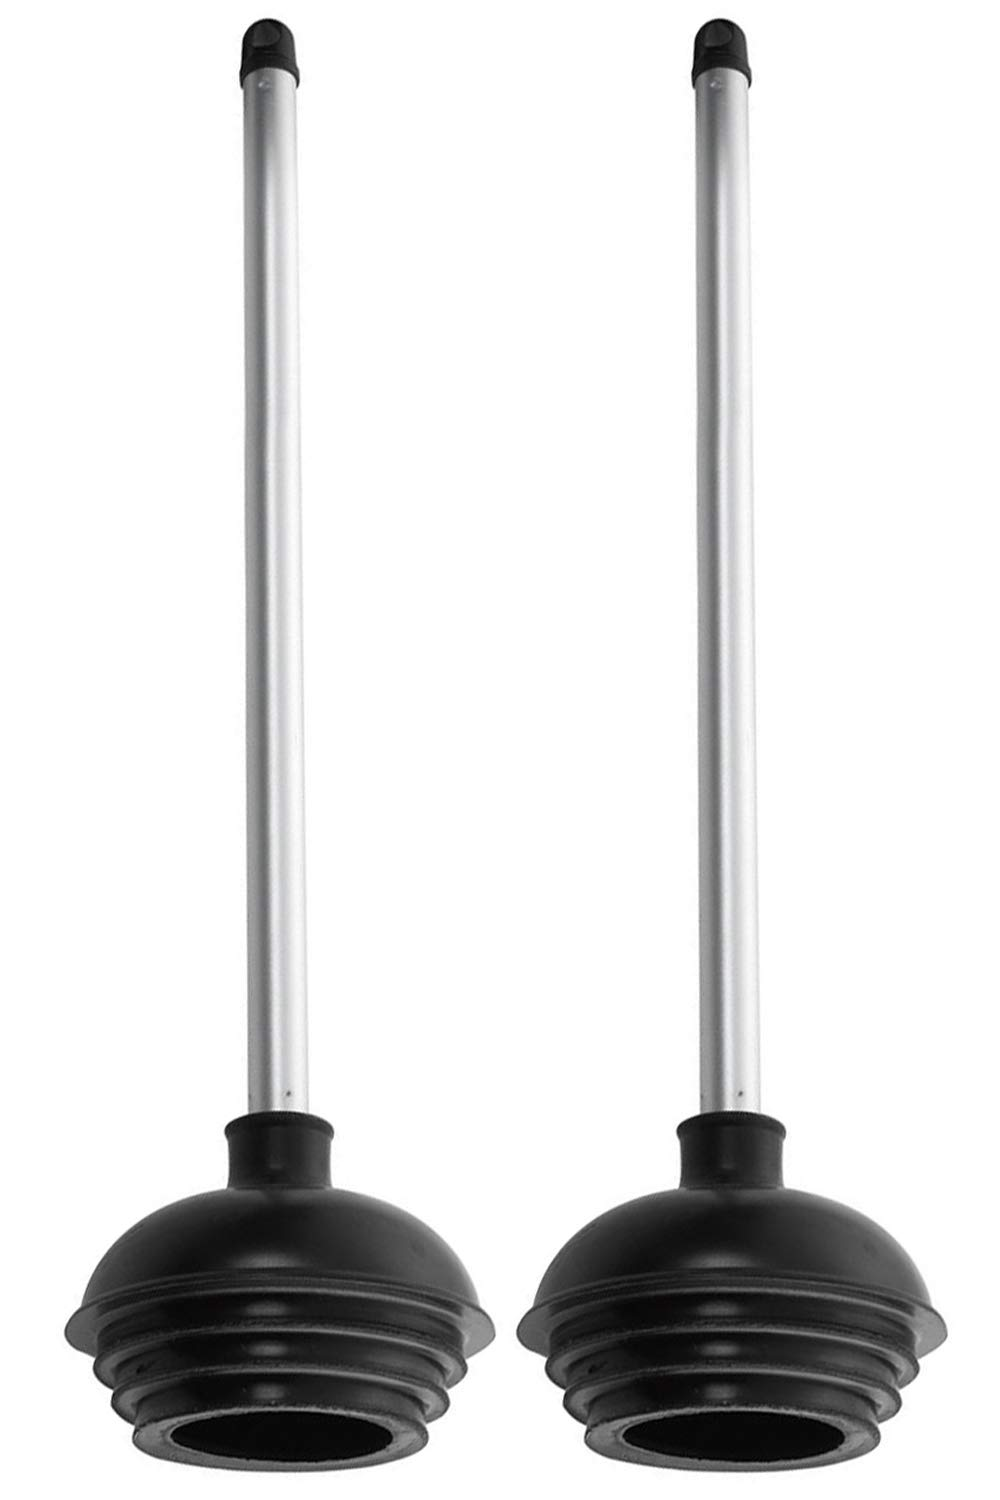 Neiko 60170A Toilet Plunger with Patented All-Angle Design | 2-Pack | Heavy Duty | Aluminum Handle by Neiko